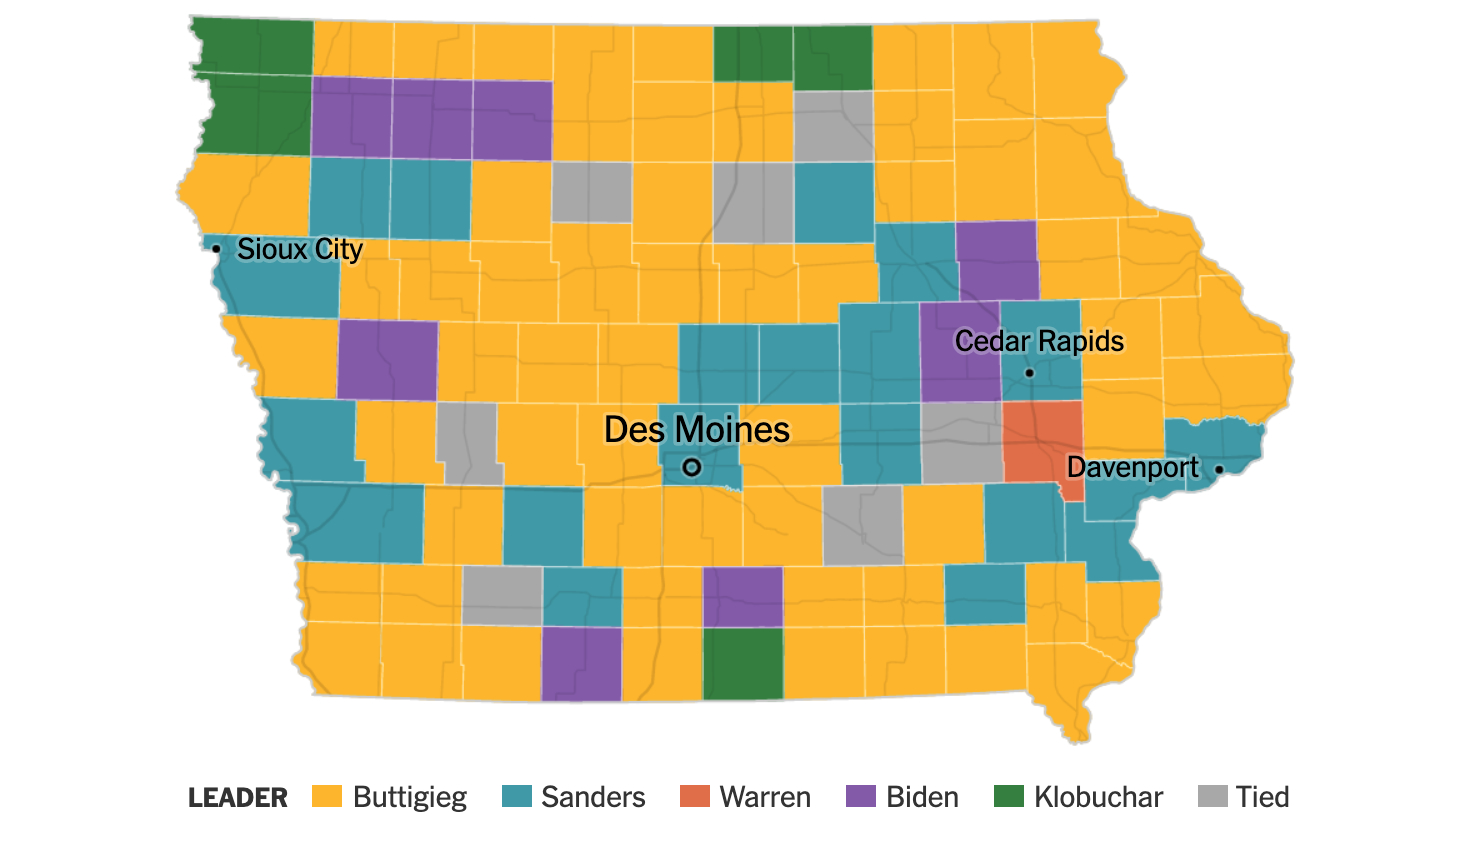 The map shows four city names, namely Des Moines,  Davenport, Cedar Rapids, and Sioux City, and Sanders won most of the counties that include or are near those cities. Most of the rest of the map went for Buttigieg, excepting a few scattered counties here and there for Biden or Klobuchar, one for Warren, and some ties.